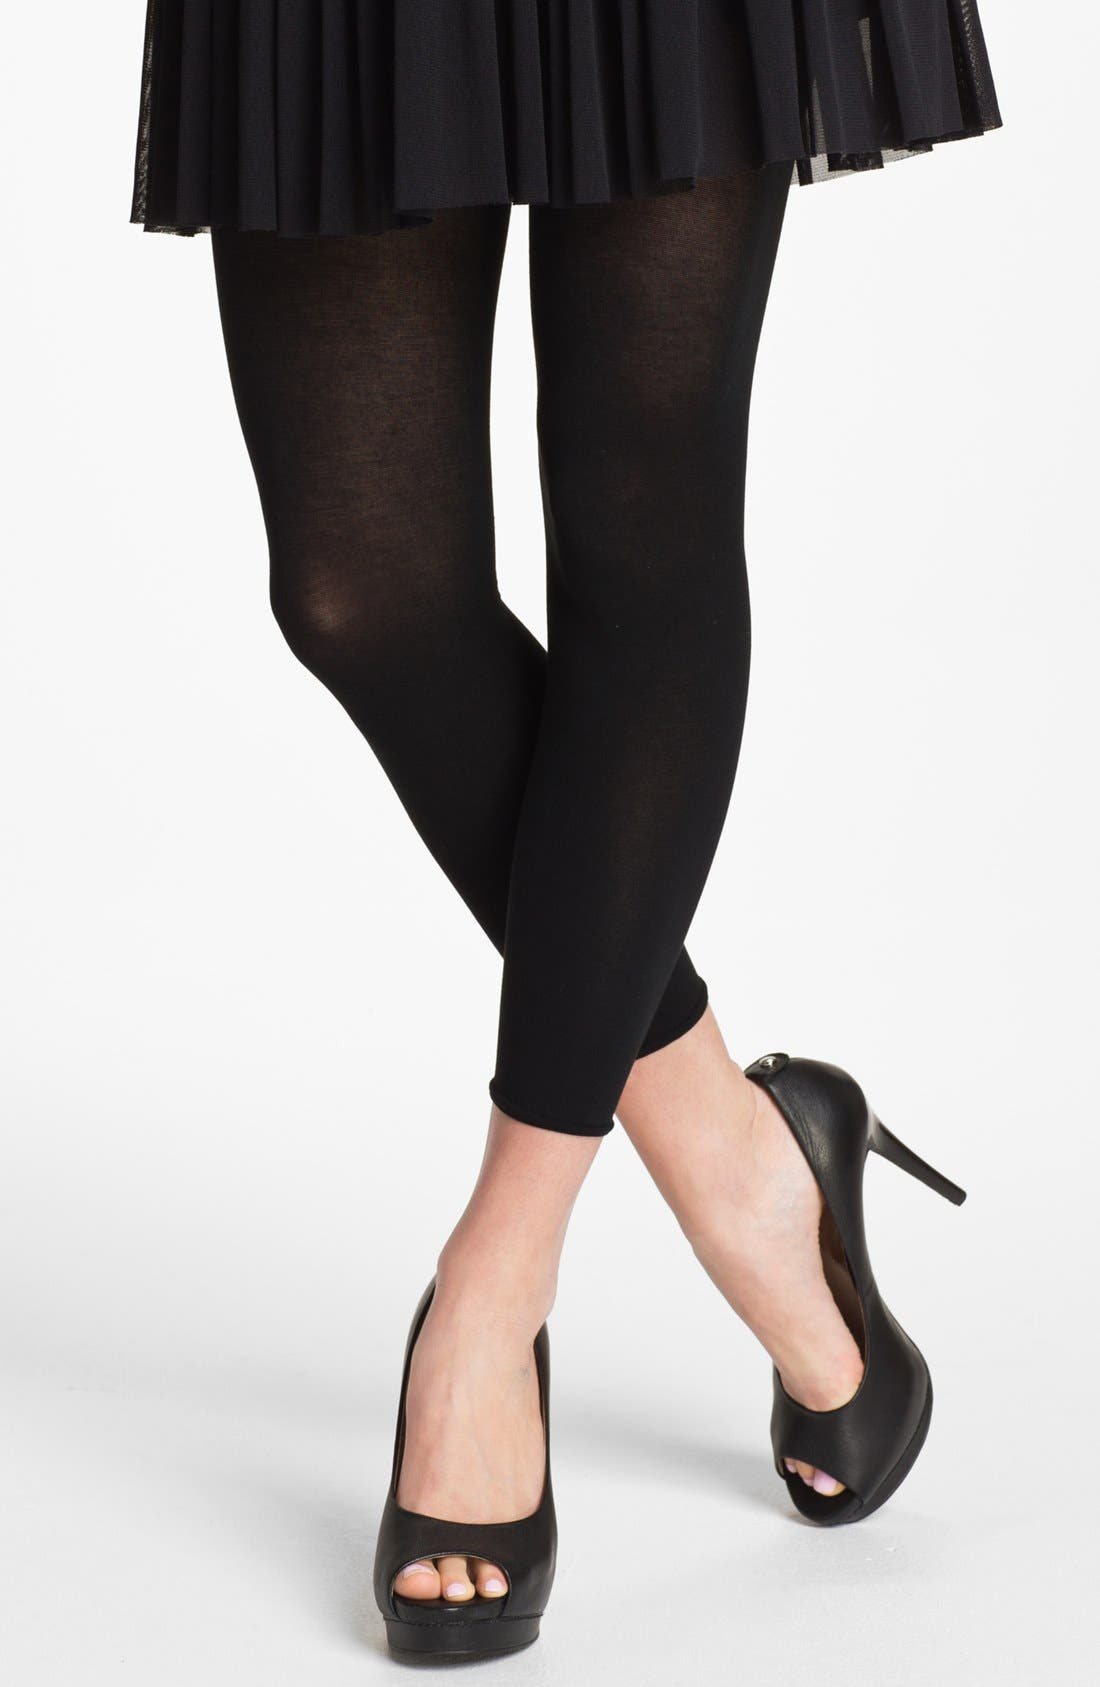 Main Image - DKNY 'Luxe Cotton' Footless Tights